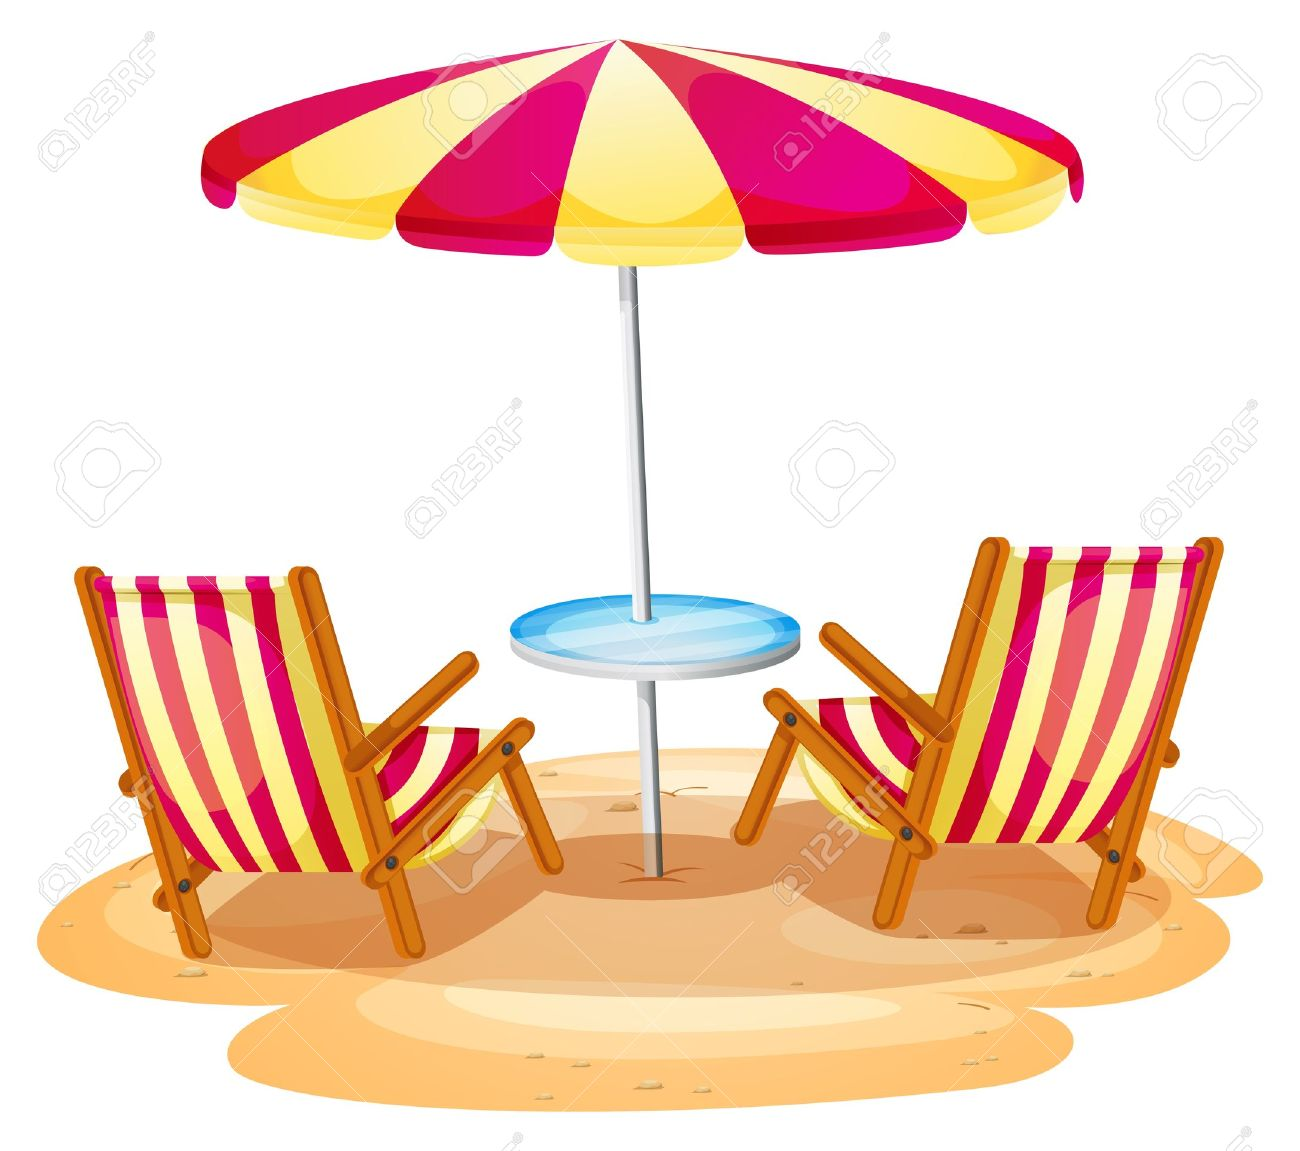 beach umbrella and chair. Simple Beach Illustration Of A Stripe Beach Umbrella And The Two Wooden Chairs On  White Background Stock Throughout Beach Umbrella And Chair B